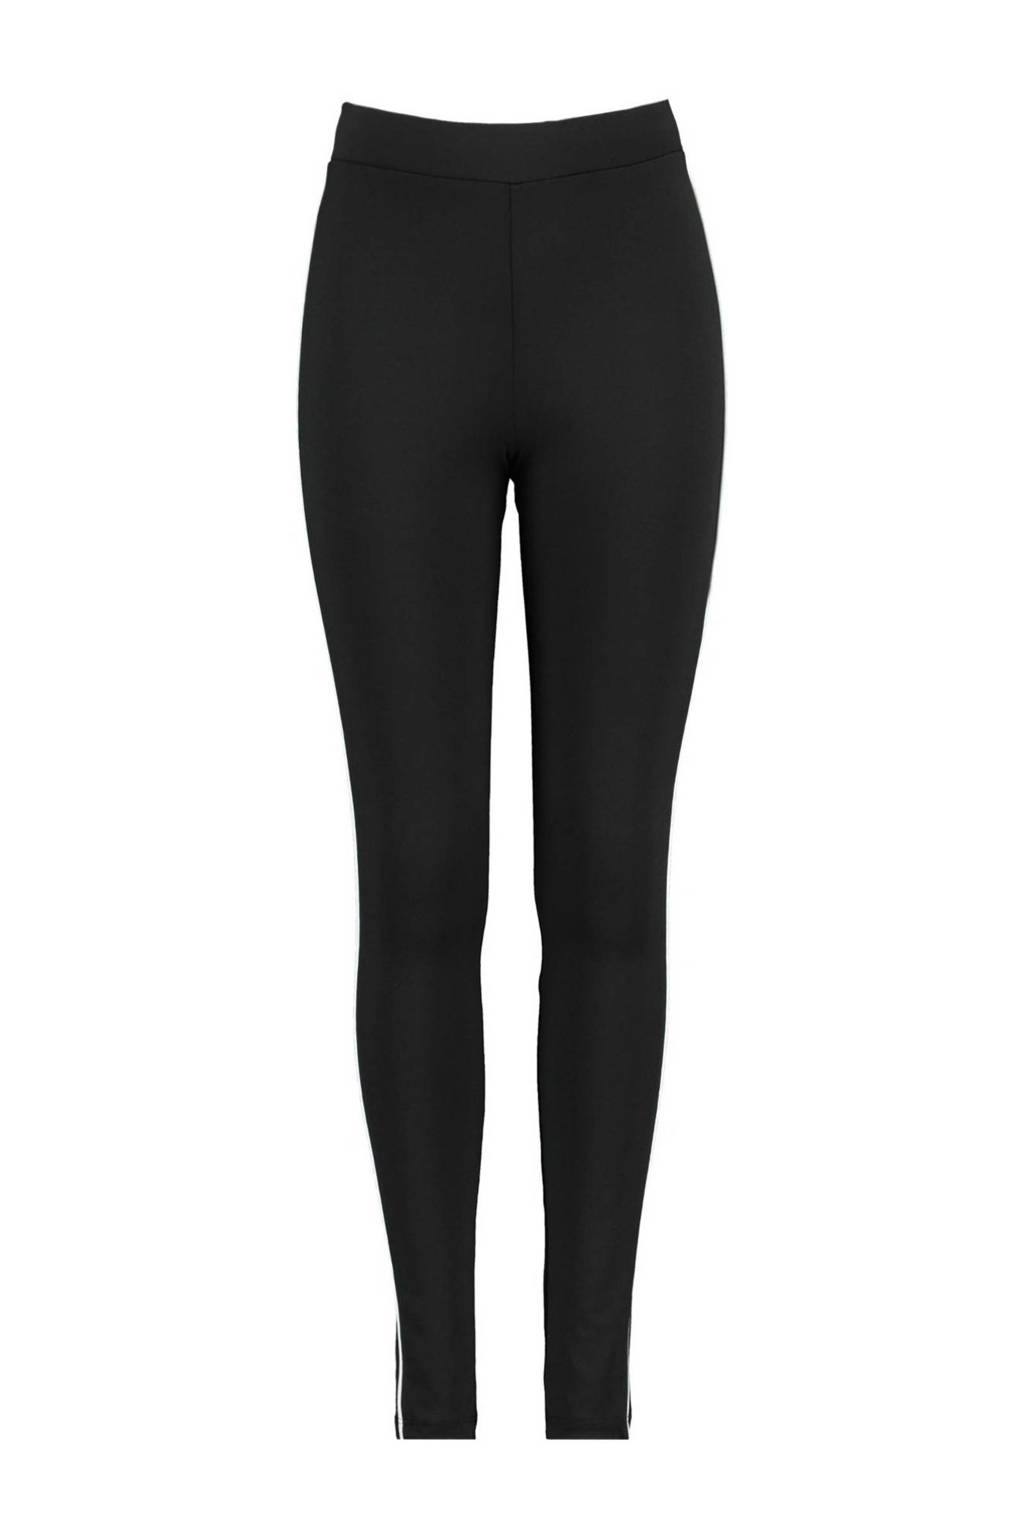 CoolCat Junior legging Pelin zwart/wit, Zwart/wit